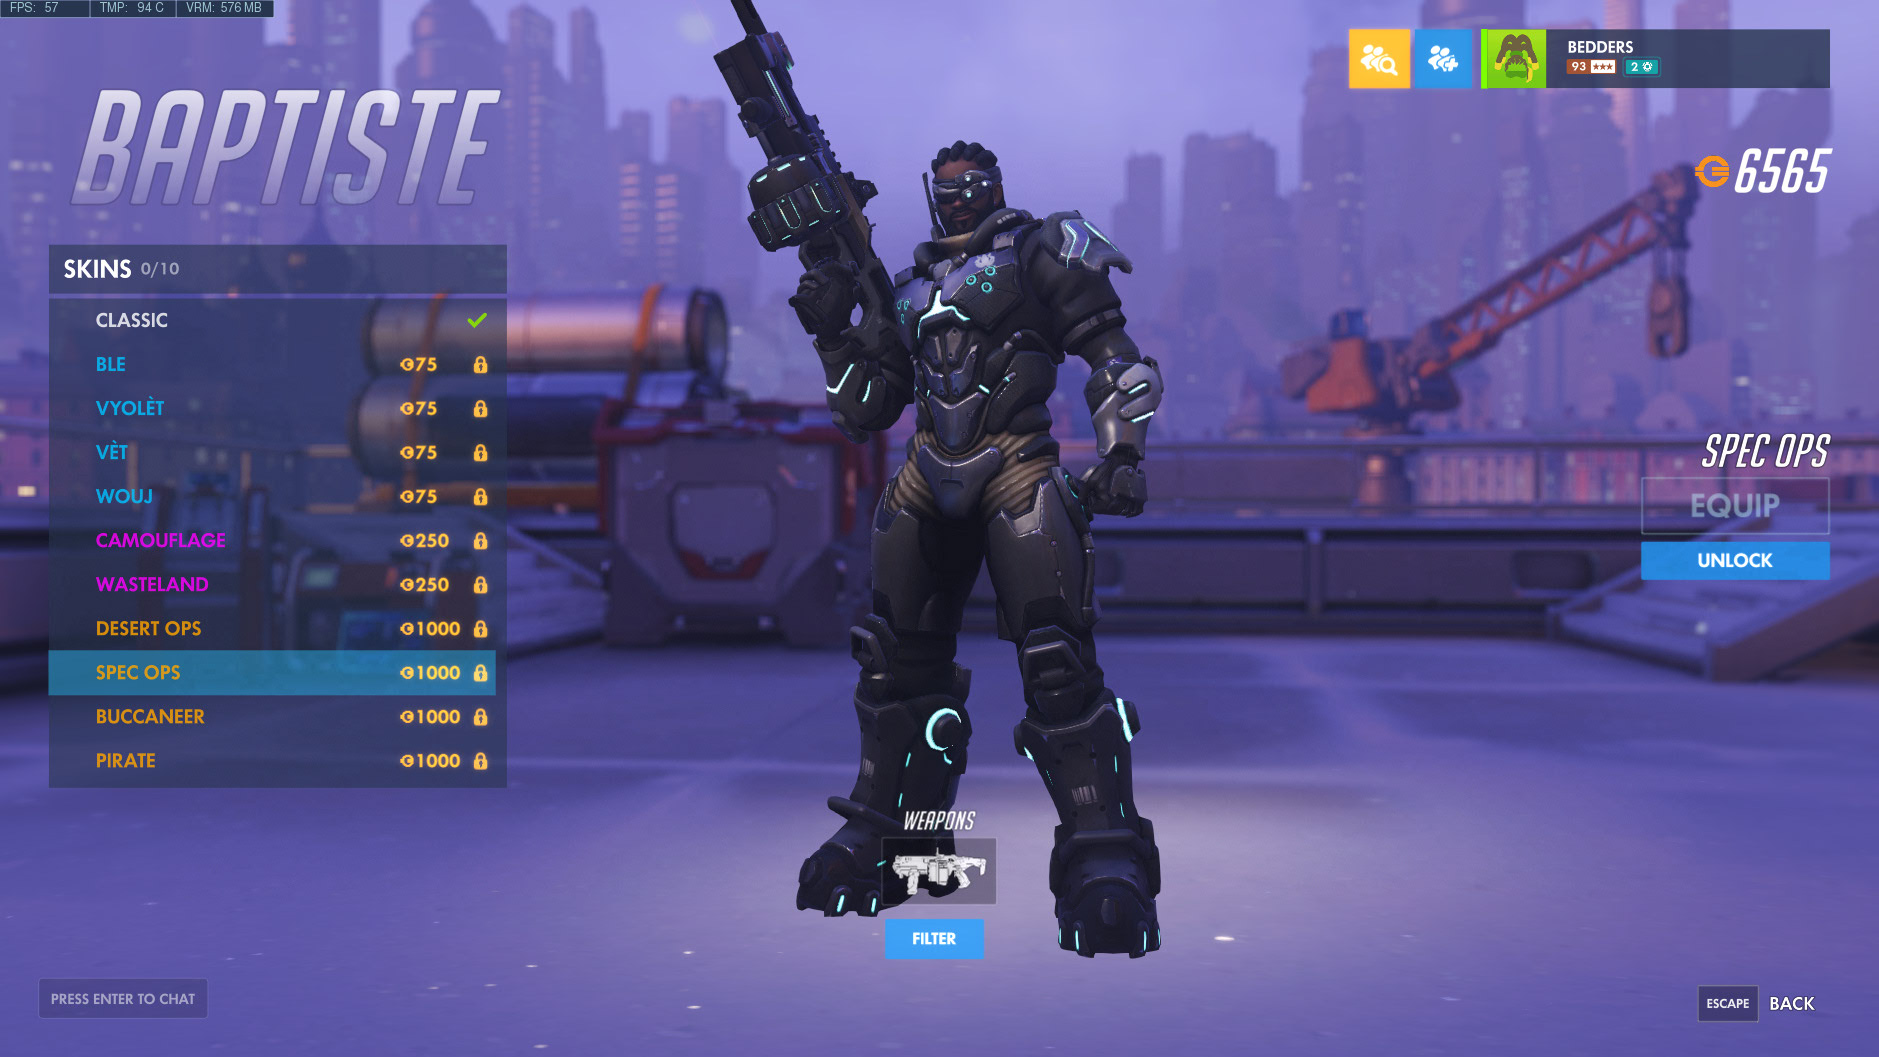 Overwatch Baptiste Legendary Skins Highlight Intros Victory Poses And Emotes Metabomb